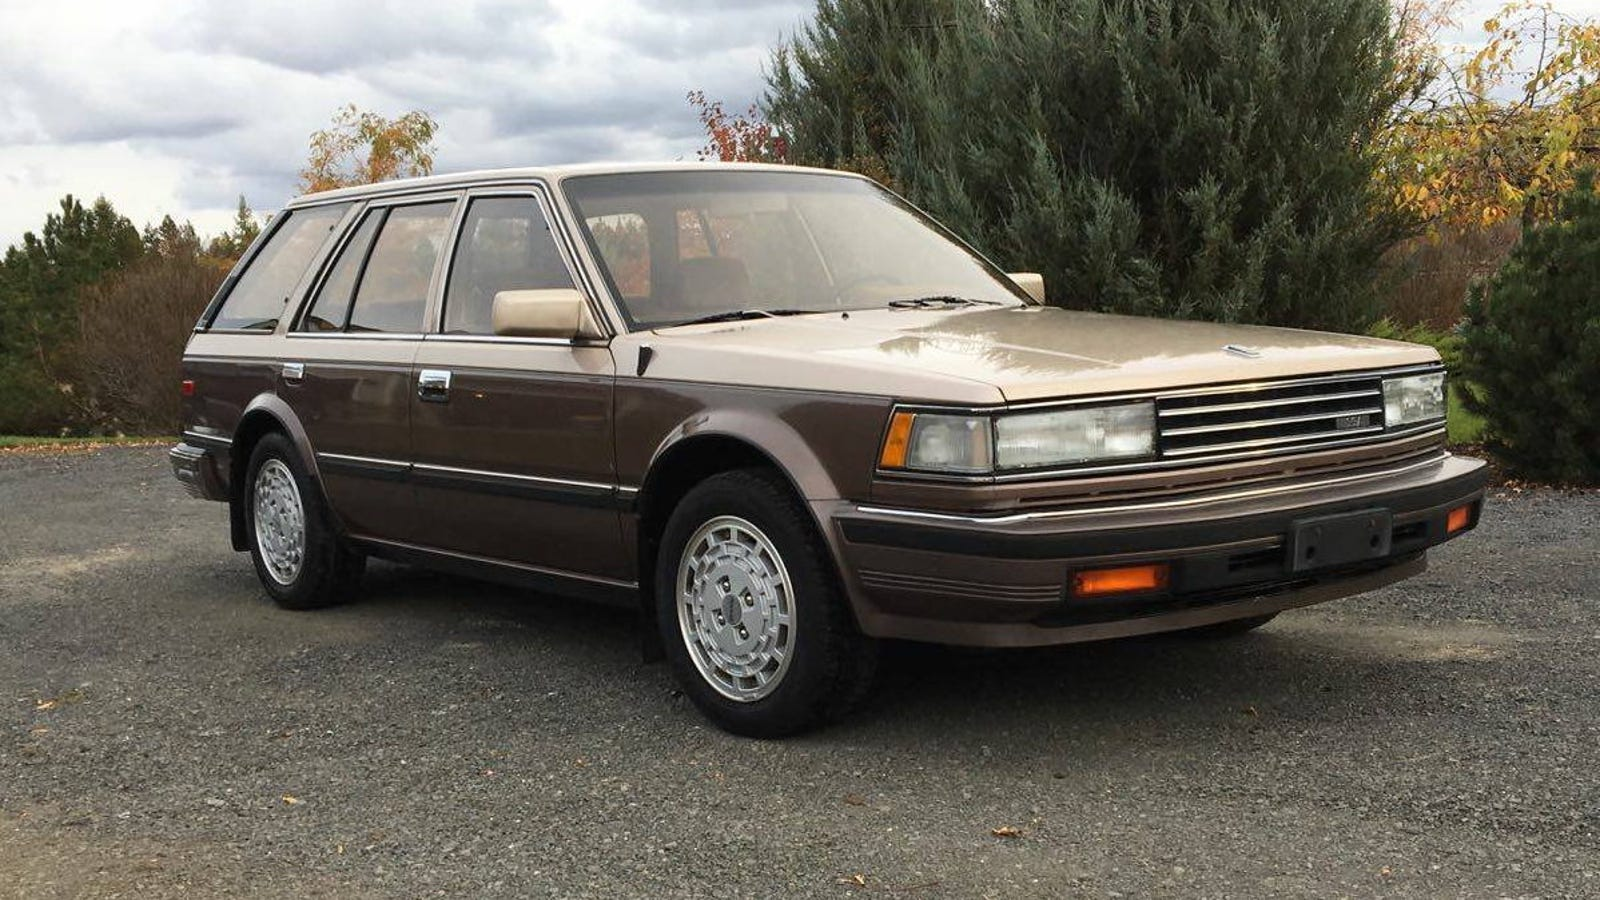 Aussie Old Parked Cars: 1995 Nissan Maxima 30 GV |Old Nissan Maxima